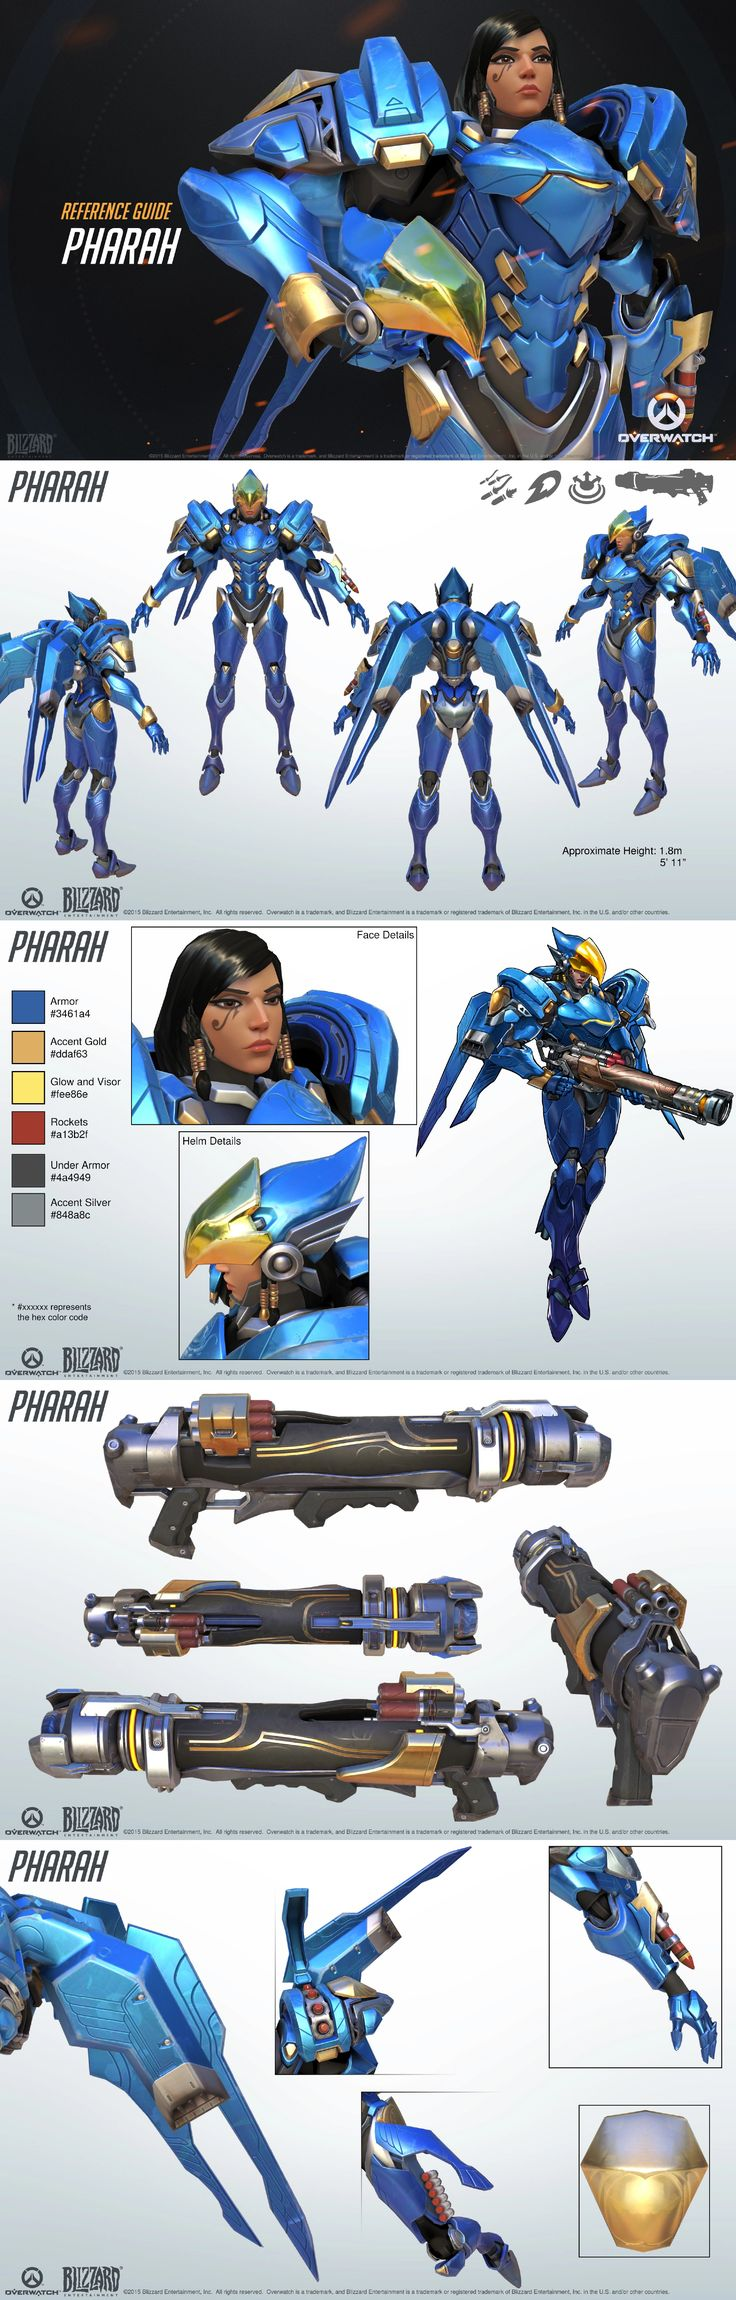 Overwatch style guide - Imgur